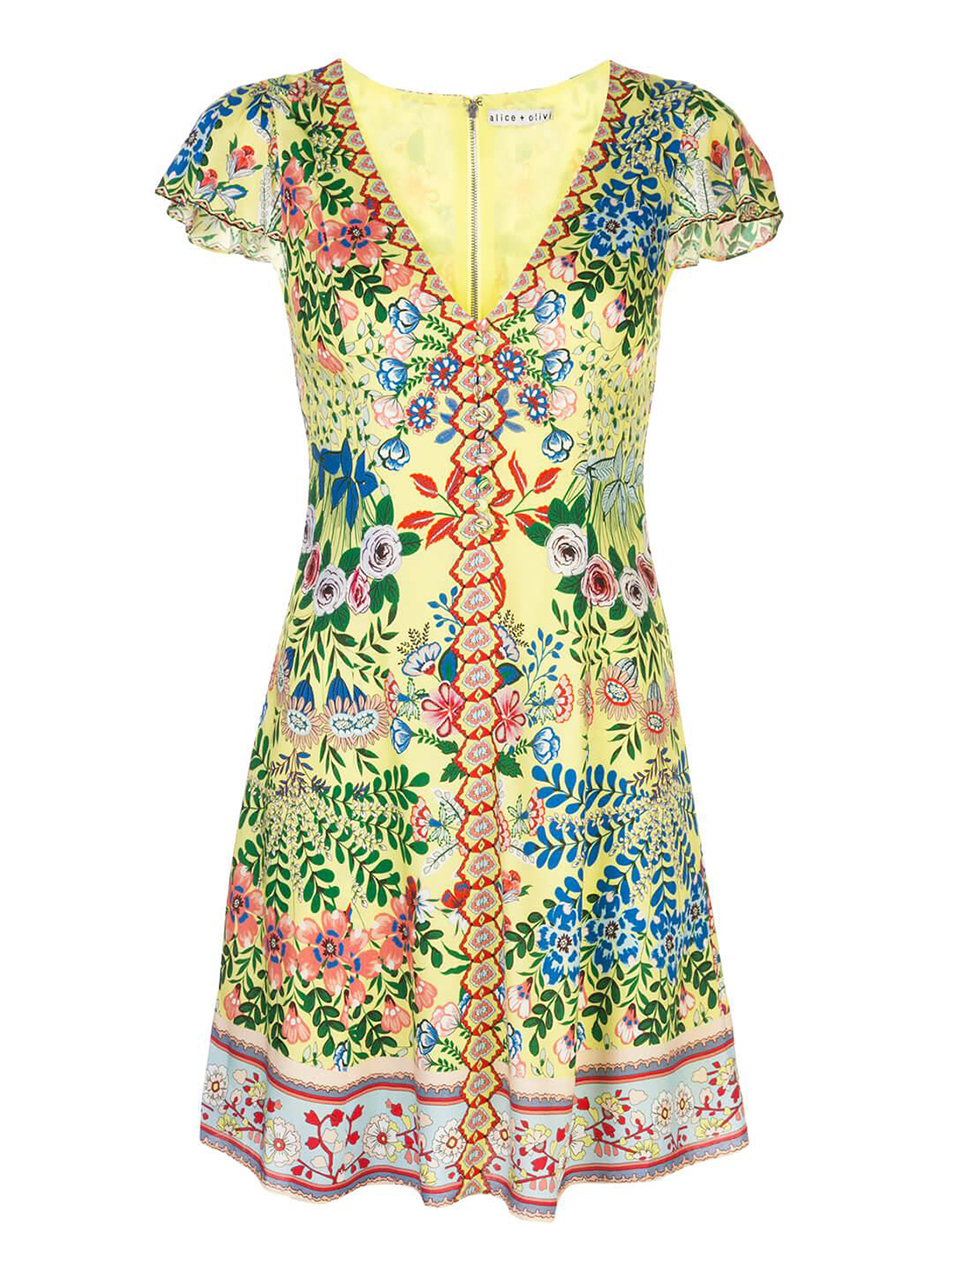 ALICE + OLIVIA Hadley Button Front Flare Dress in Wildflower Daffodil Product Shot